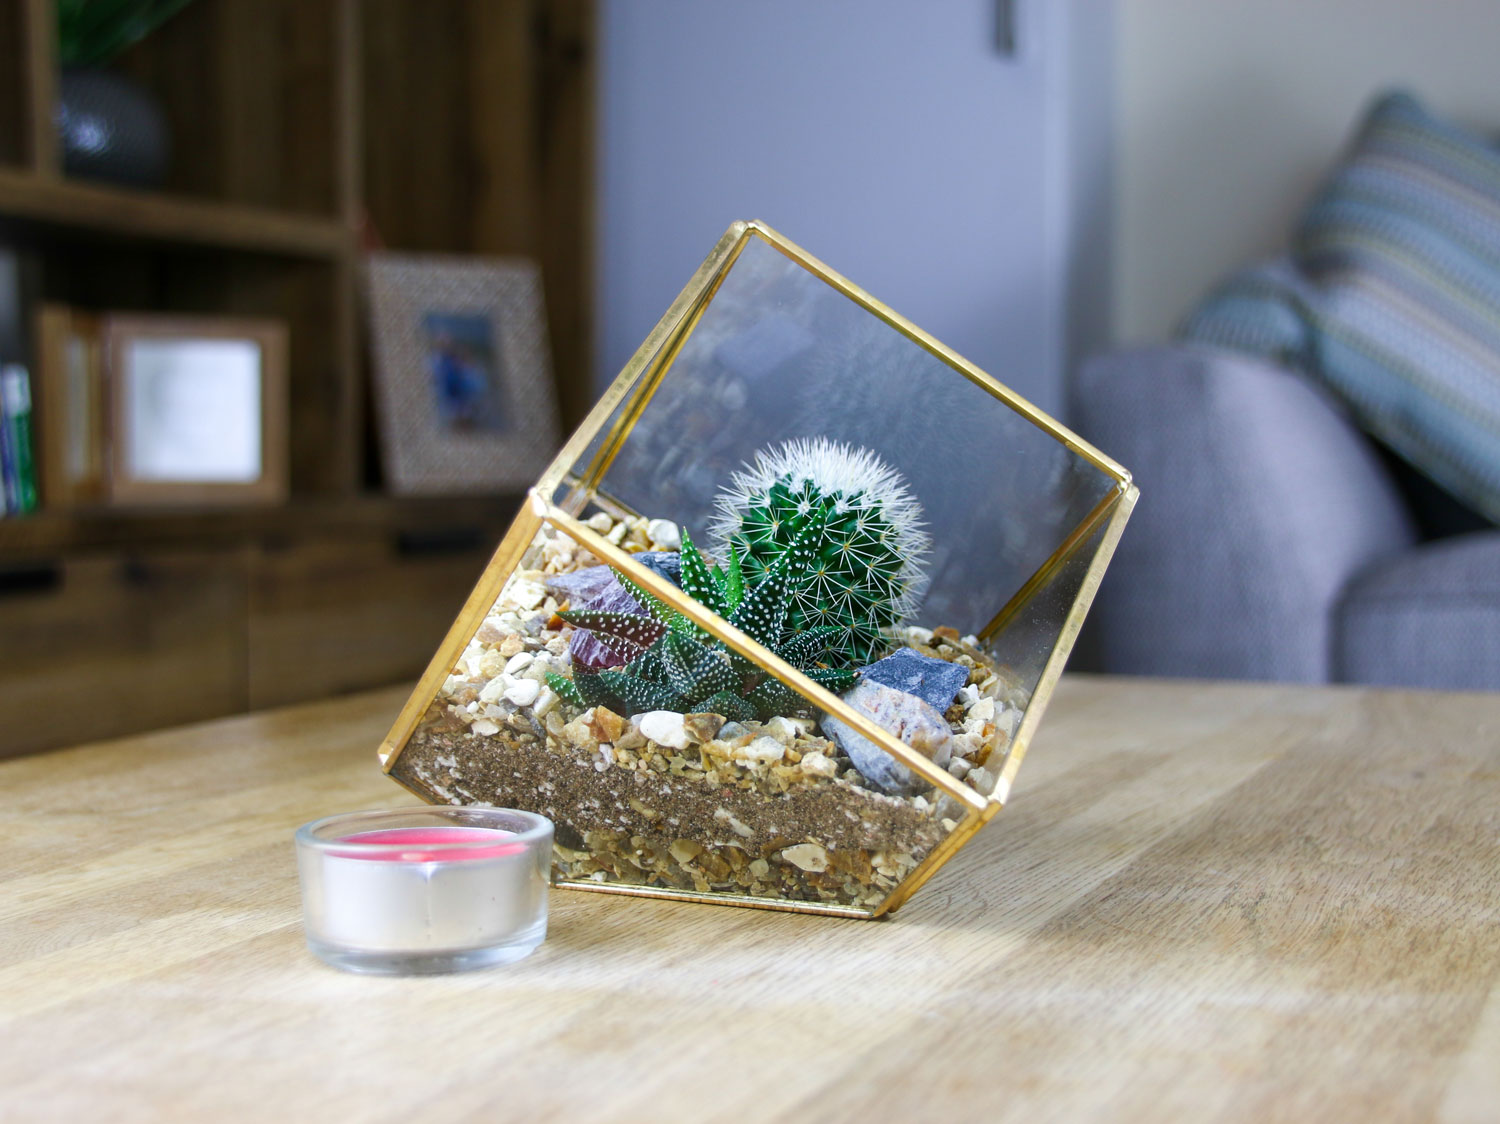 Gold Brass Cube Geo Terrarium With Cactus And Succulent Mix Plant Gift Ideas The Art Of Succulents